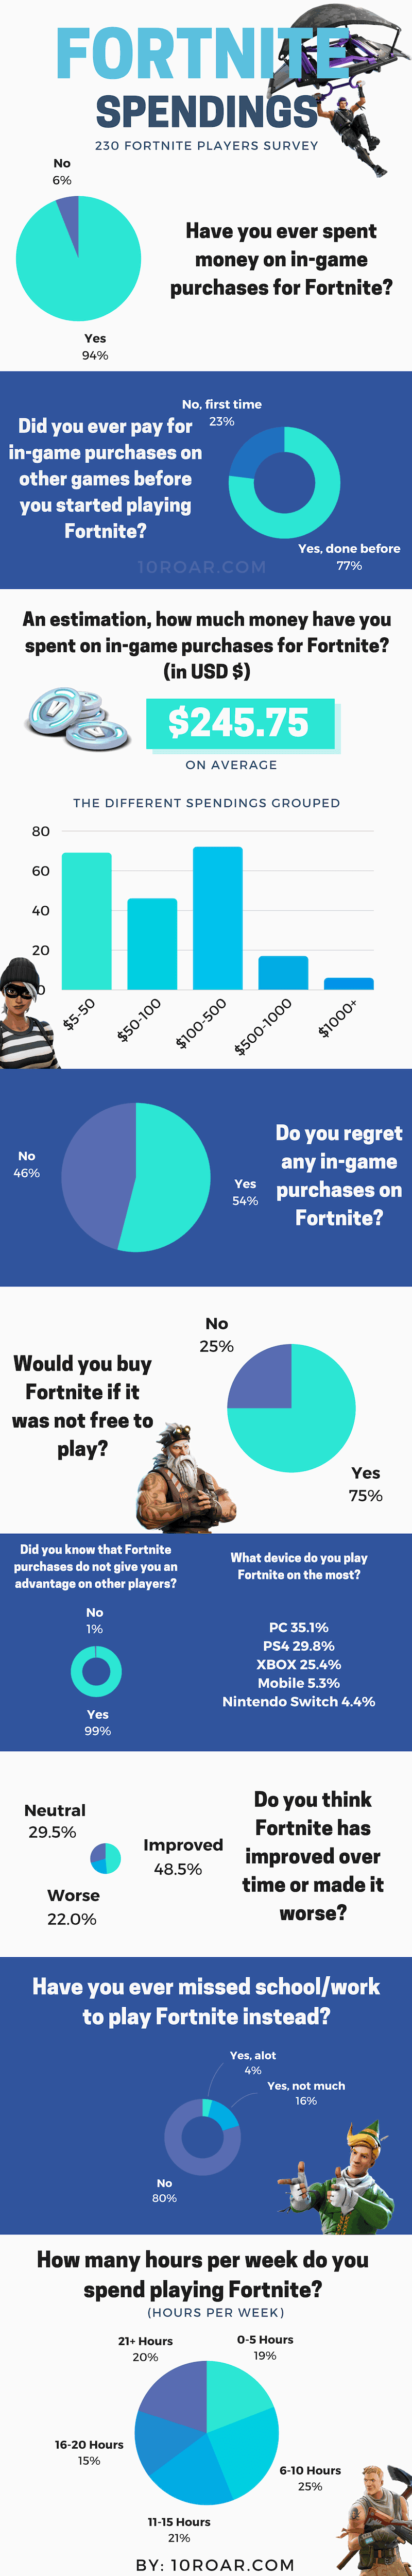 Fortnite Survey Infographic